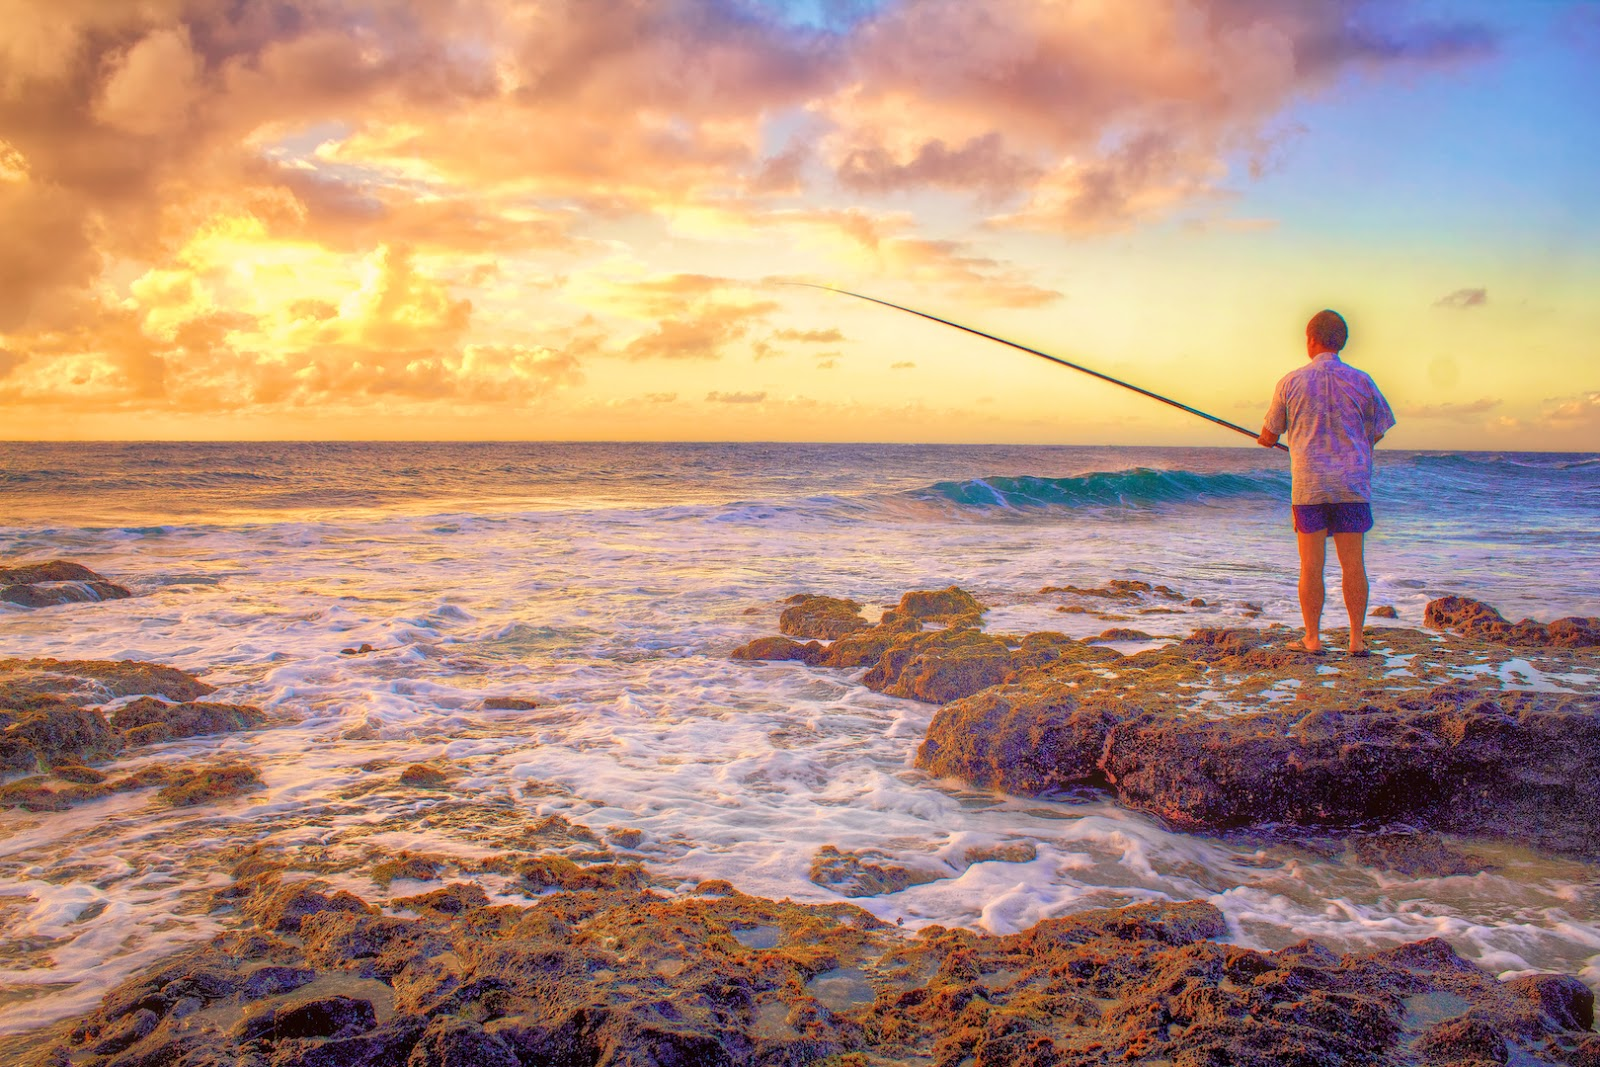 Fisherman shorecasting off the Ka Iwi Coastline, O'ahu